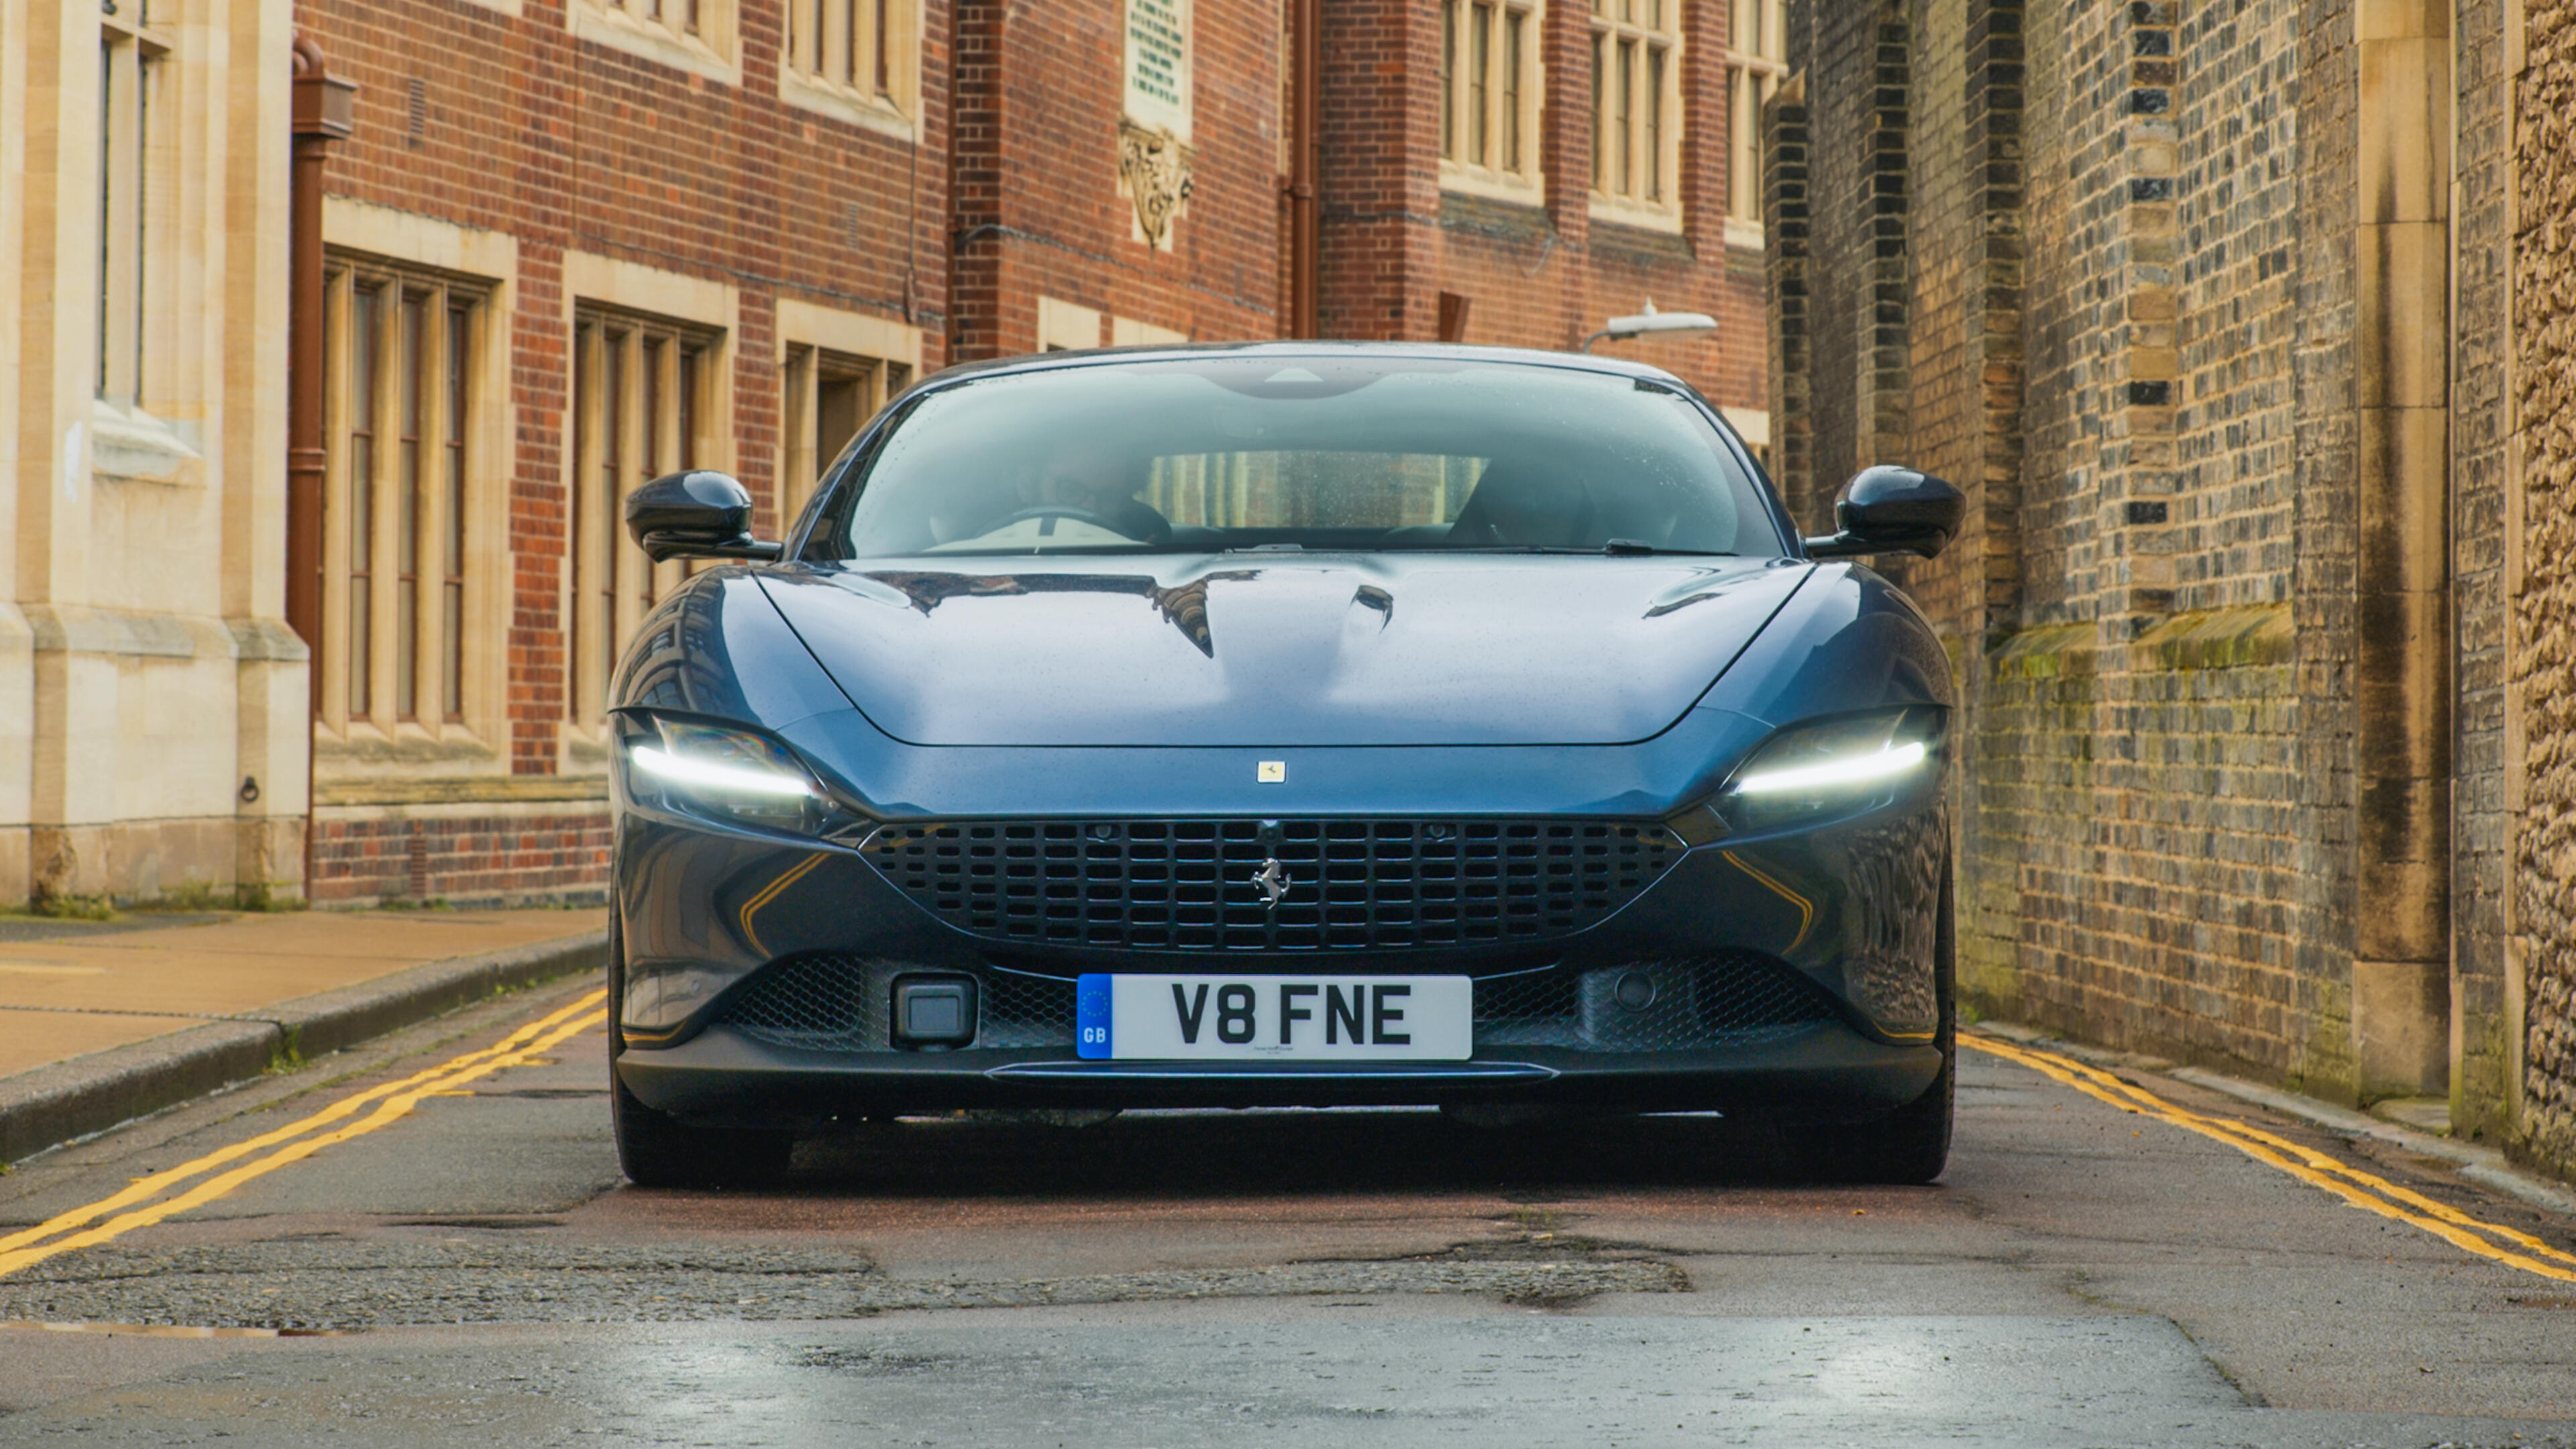 Video: The Ferrari Roma is a beautiful grand tourer with strong performance